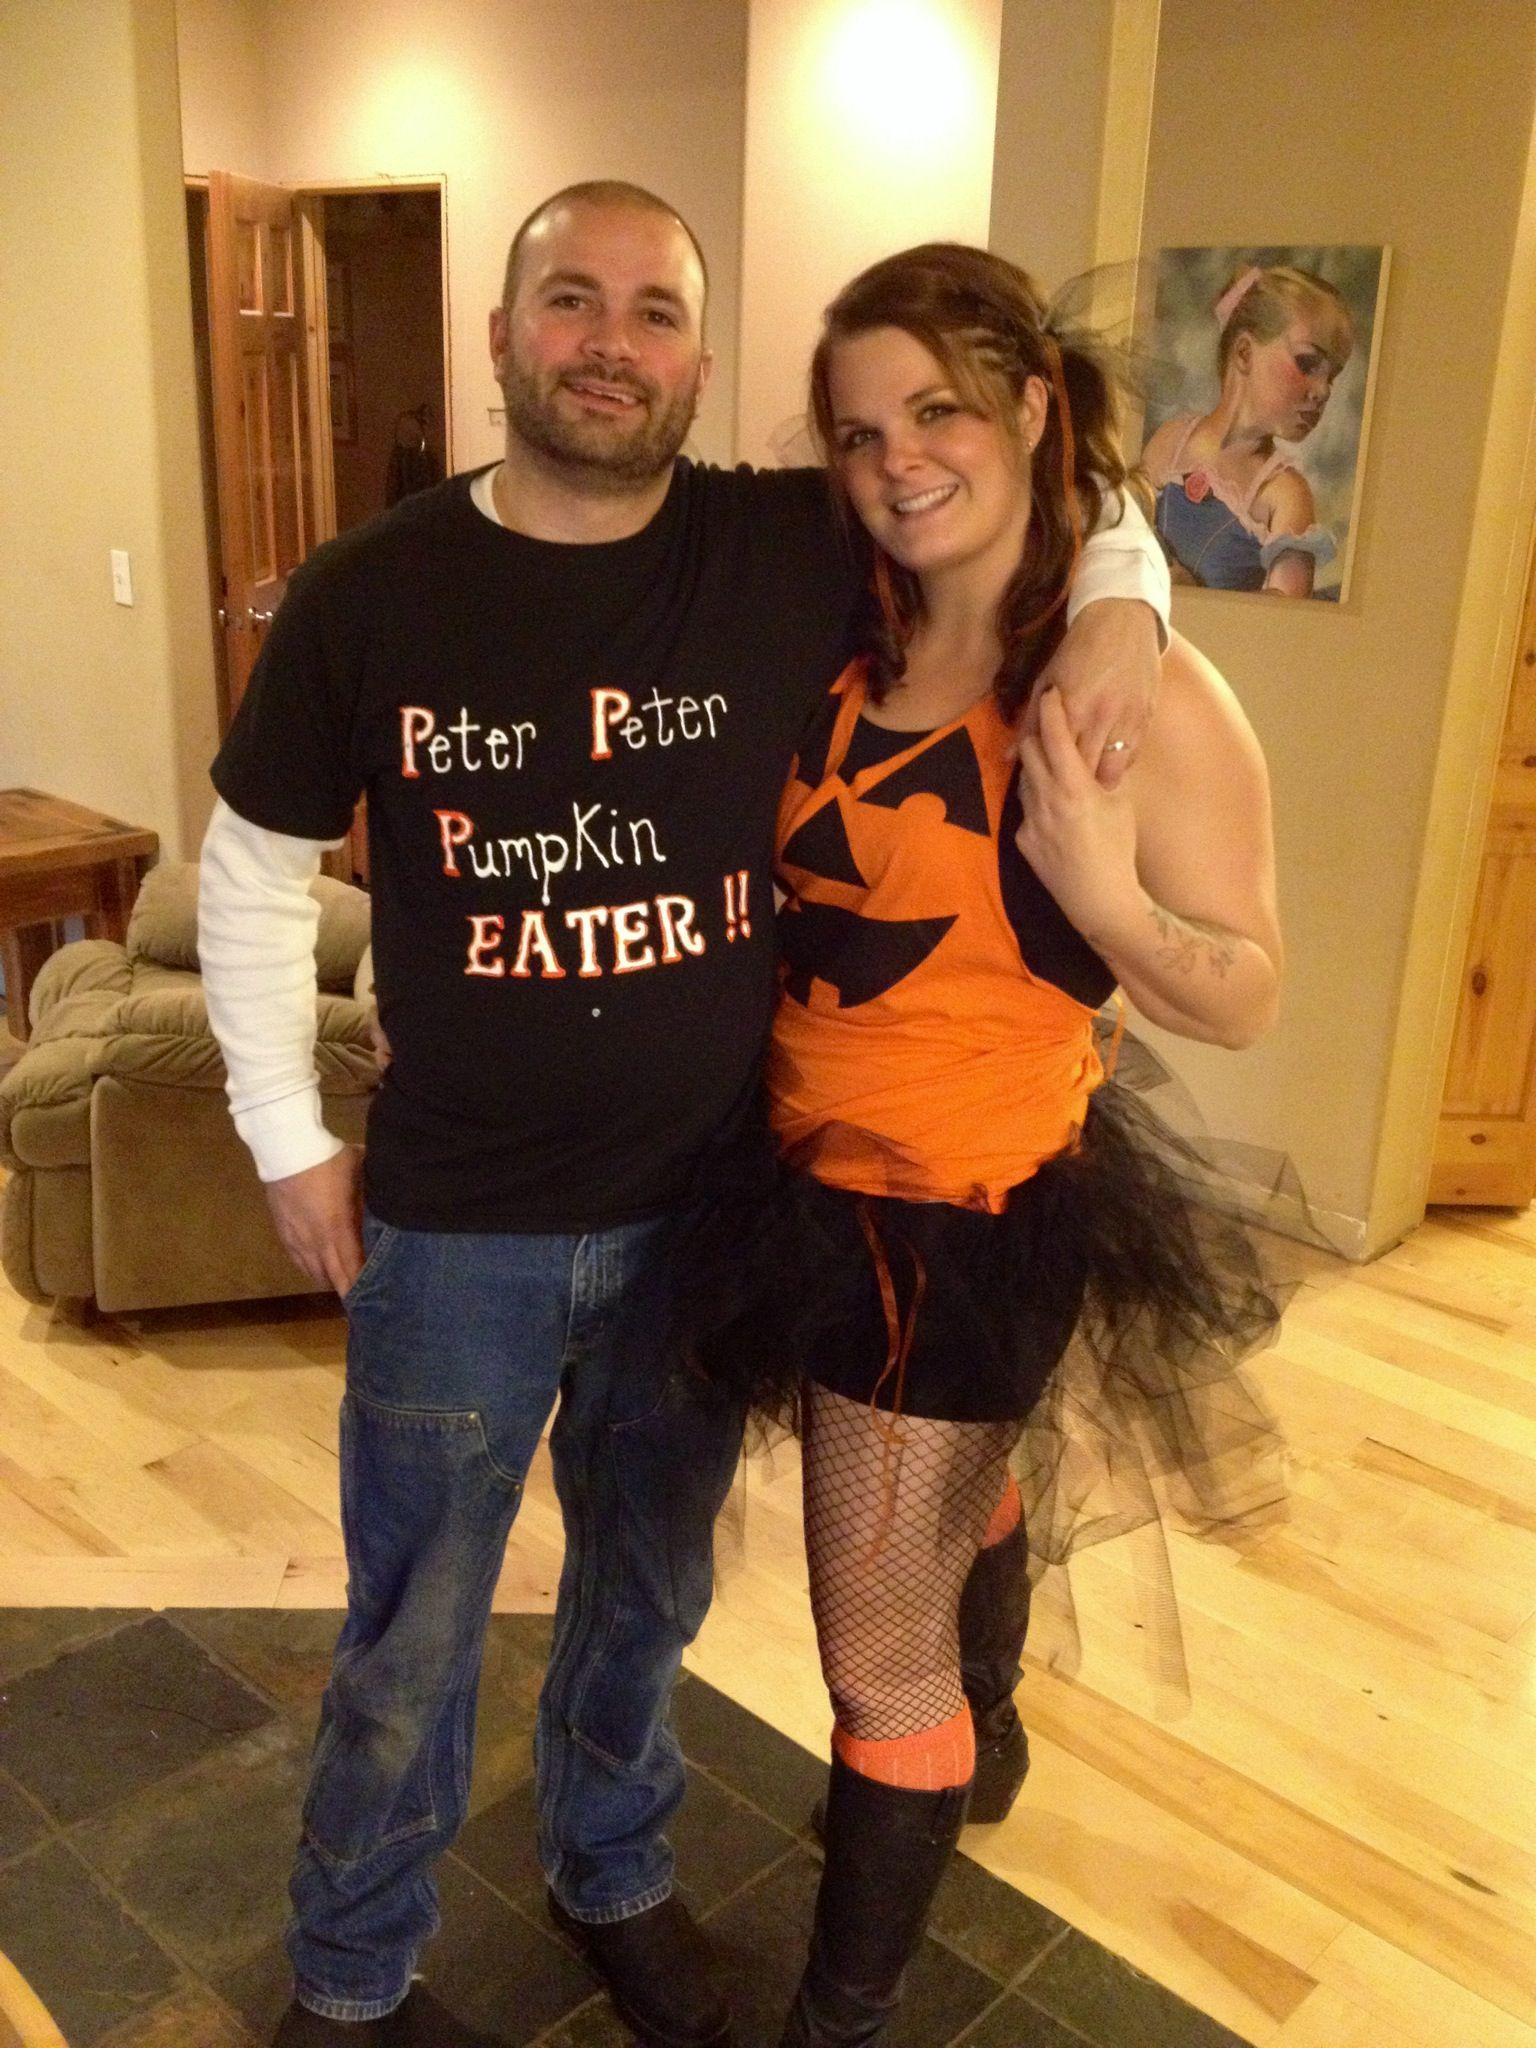 cute couple costume idea!!! (: | holiday ideas | halloween costumes